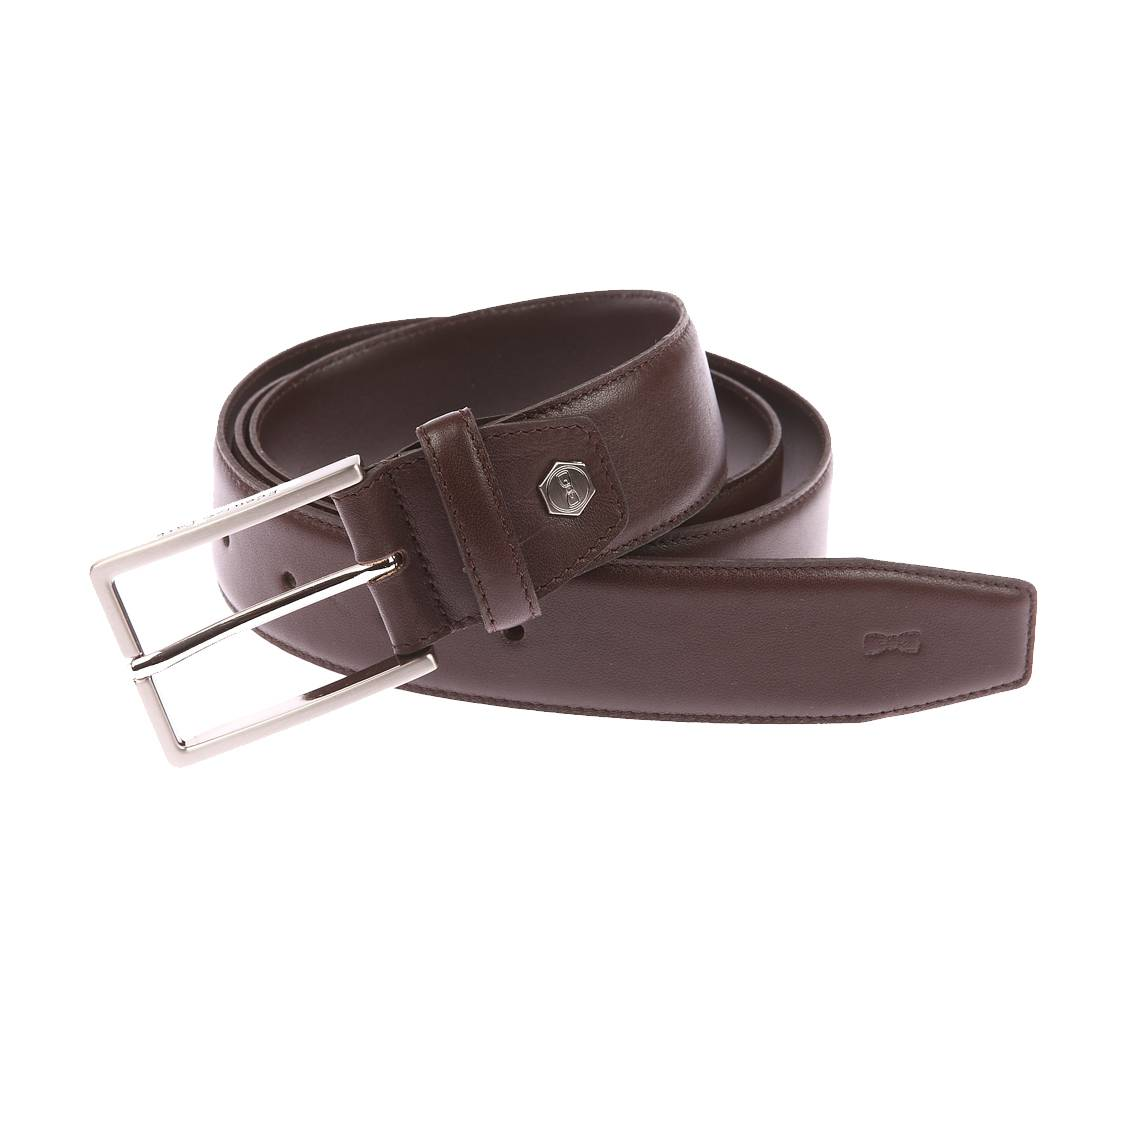 Ceinture ajustable  en refente de cuir marron